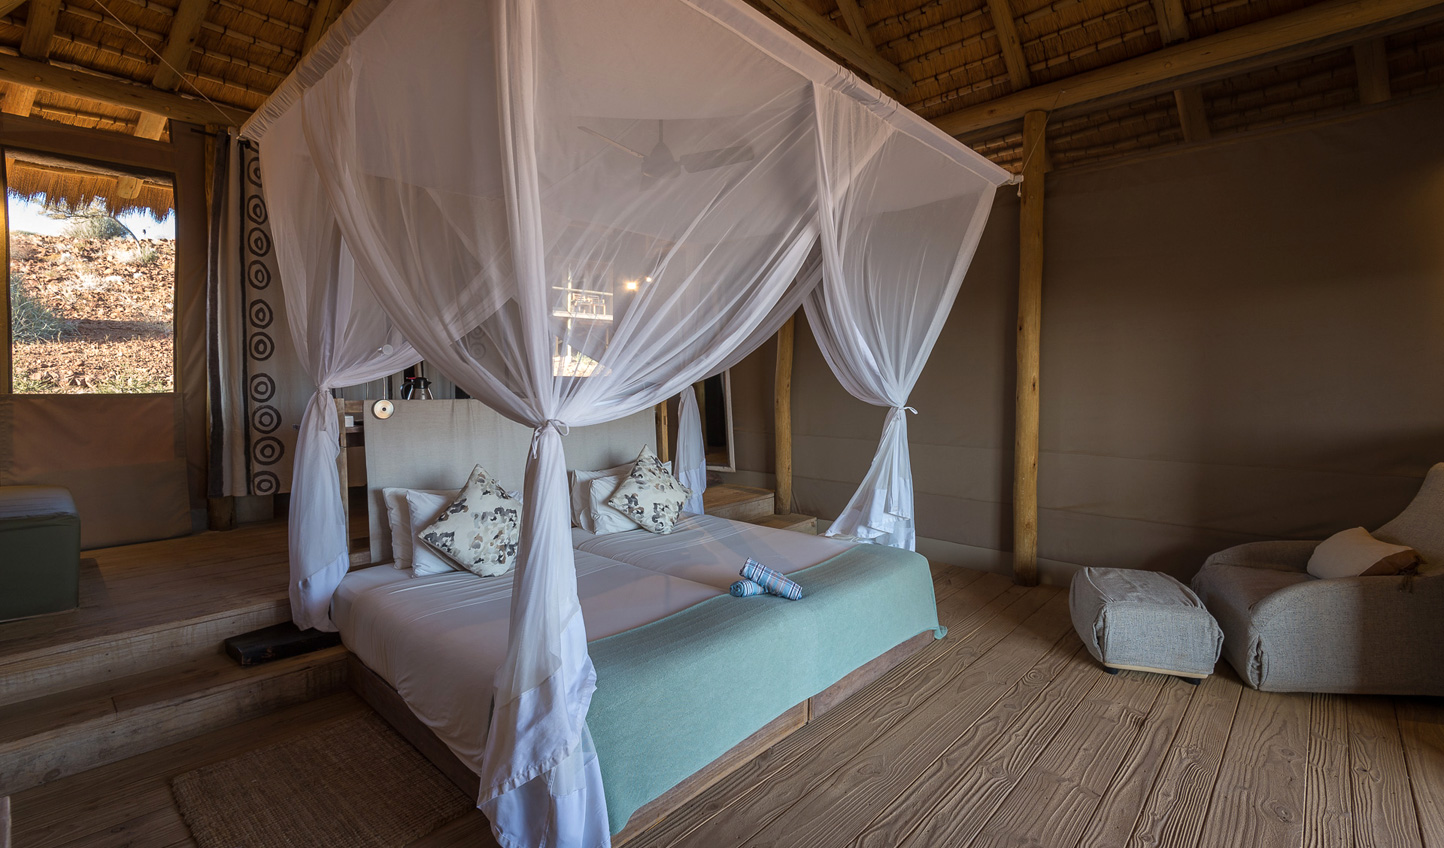 Sleep soundly in the African-chic bedrooms